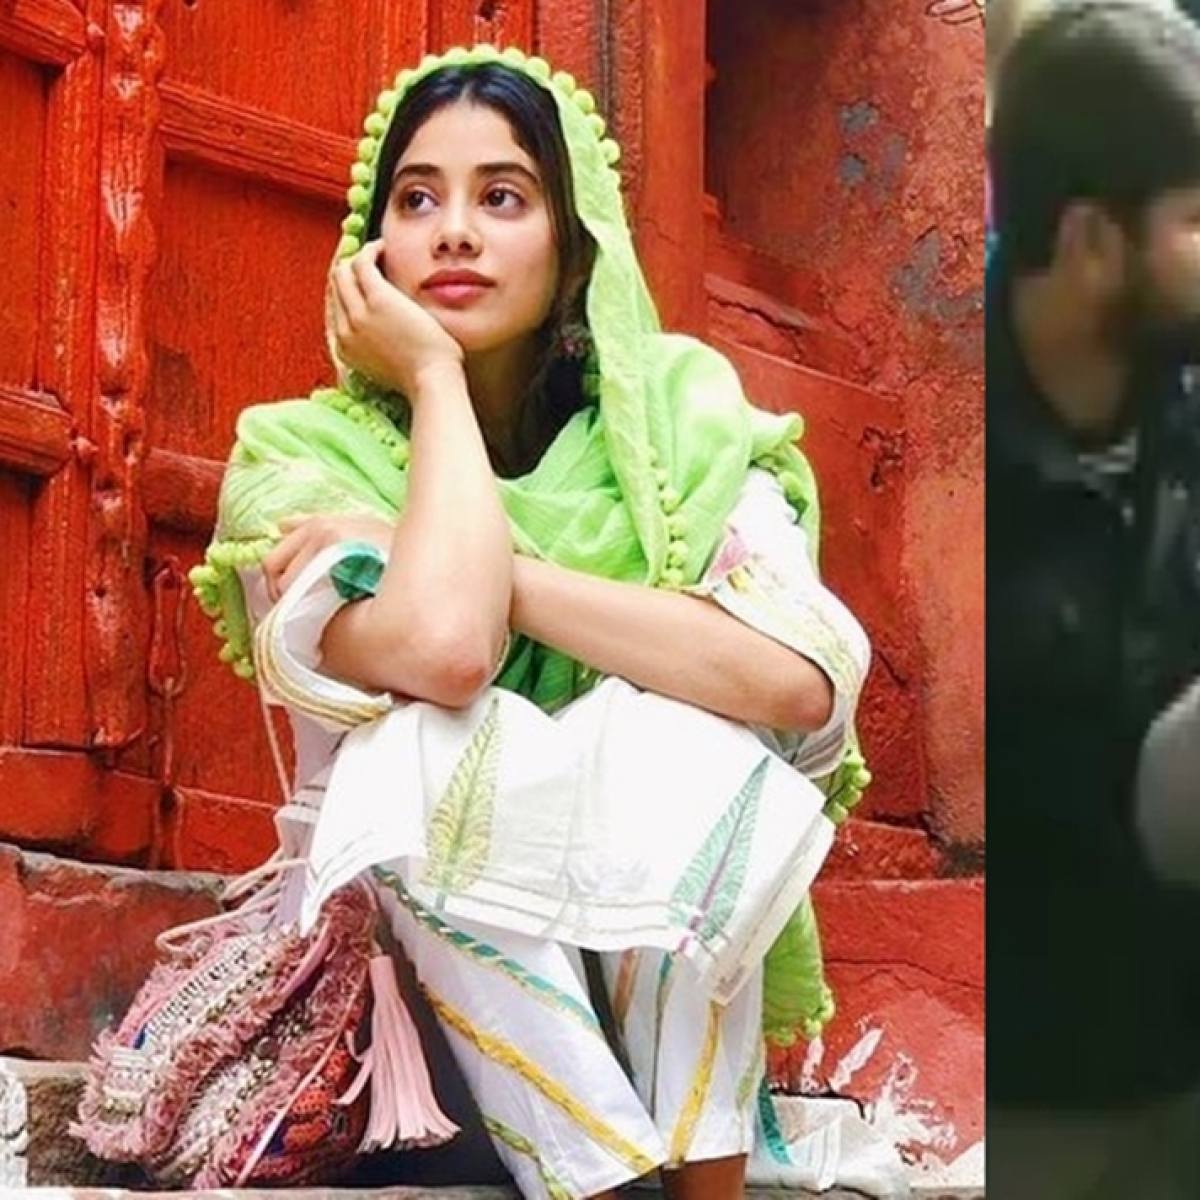 Farmer groups disrupt Janhvi Kapoor's film shoot in Punjab, demand to know her opinion on farm laws